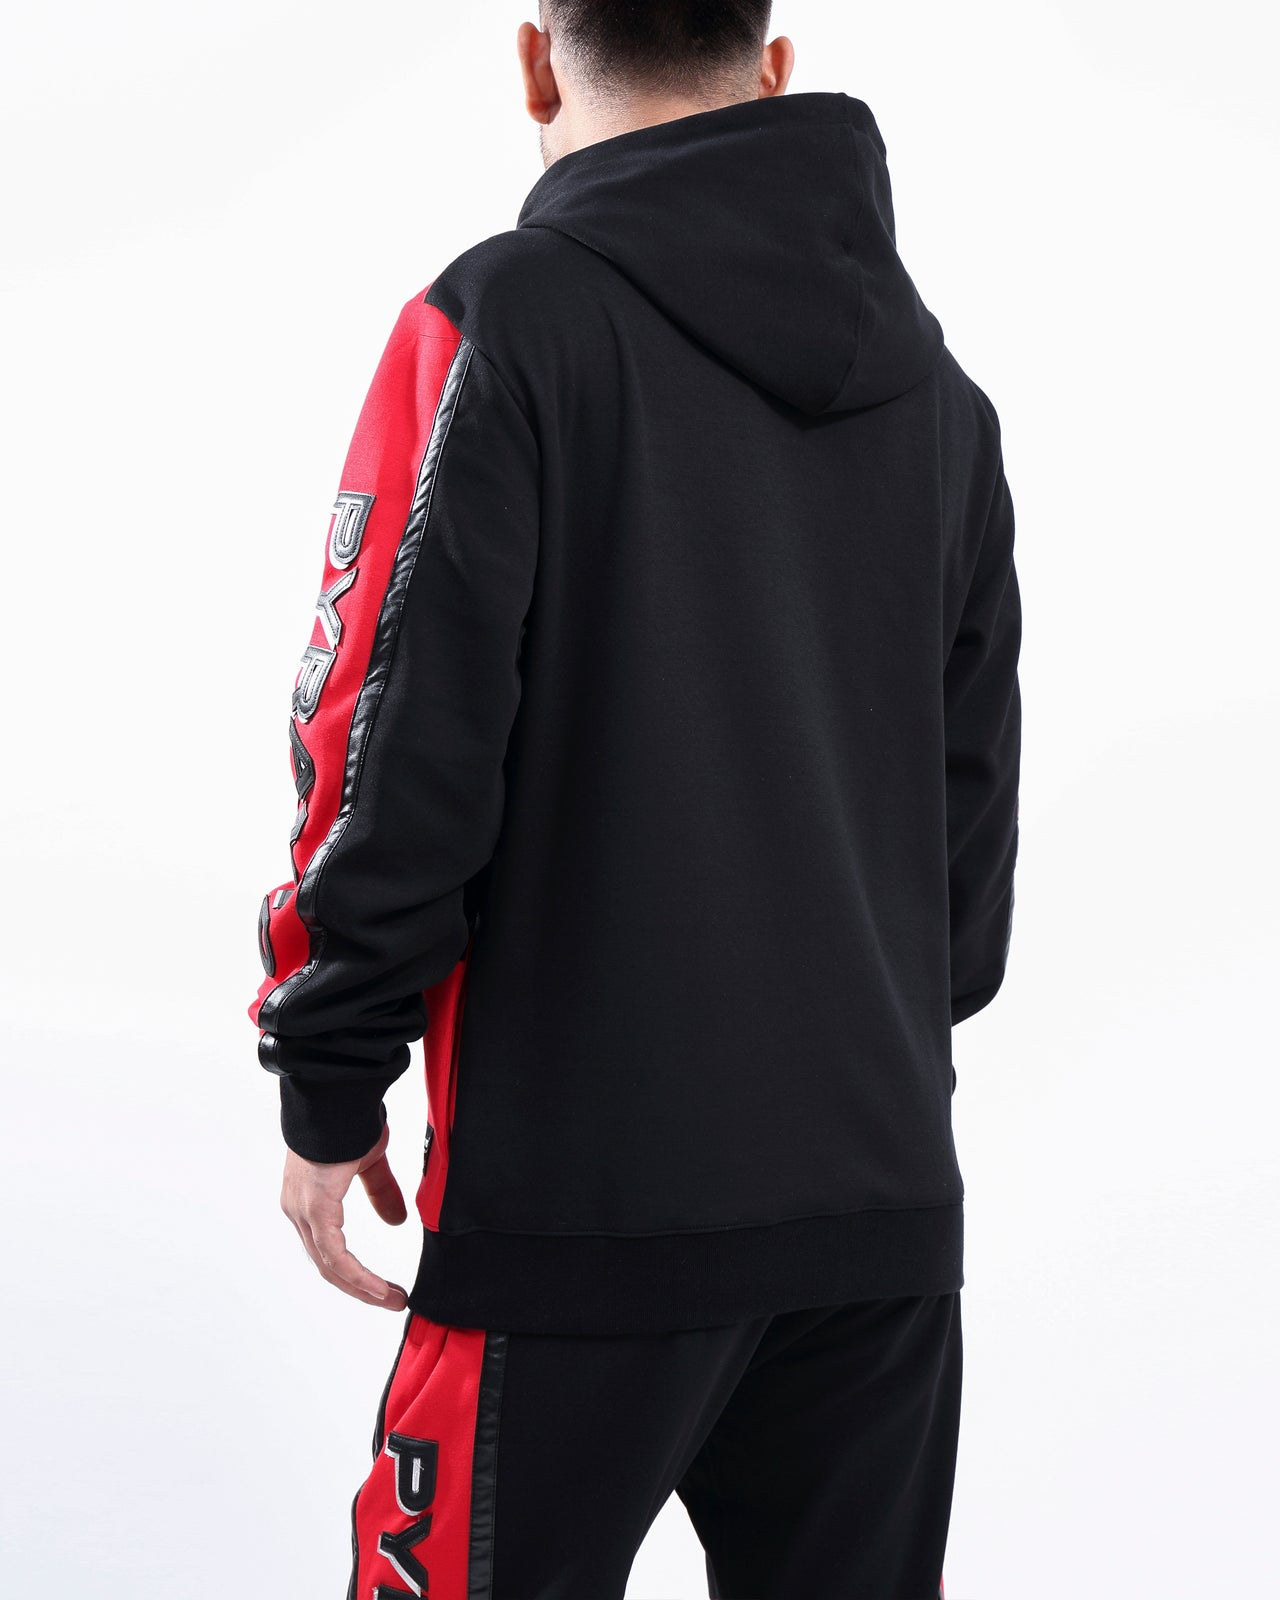 TEAM OHB CRIMSON HOODY - Color: Red